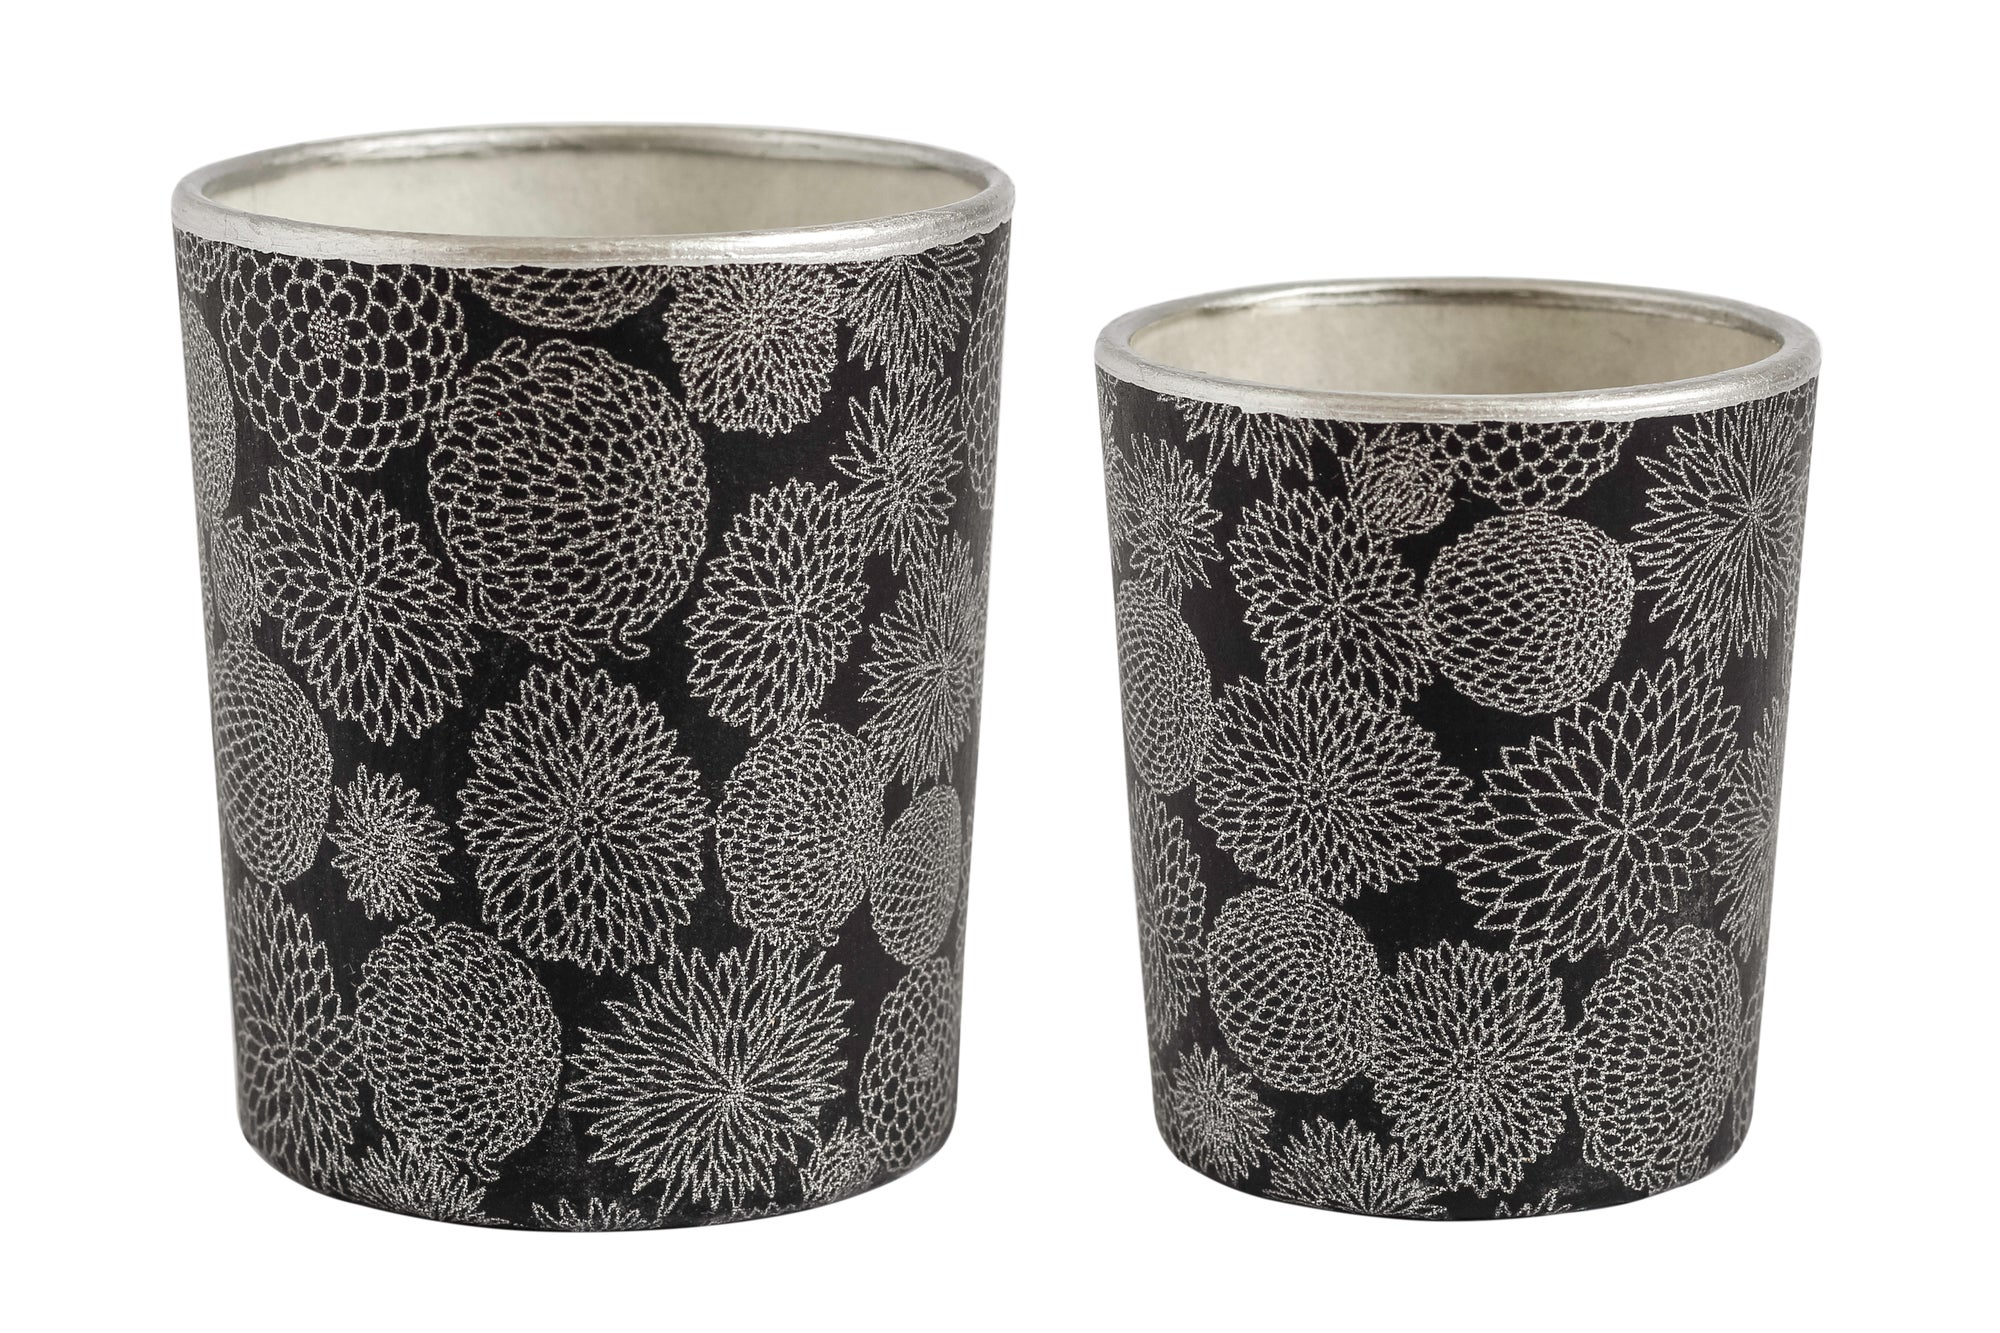 Image of Candle holders * Chrysanthemum * Silver